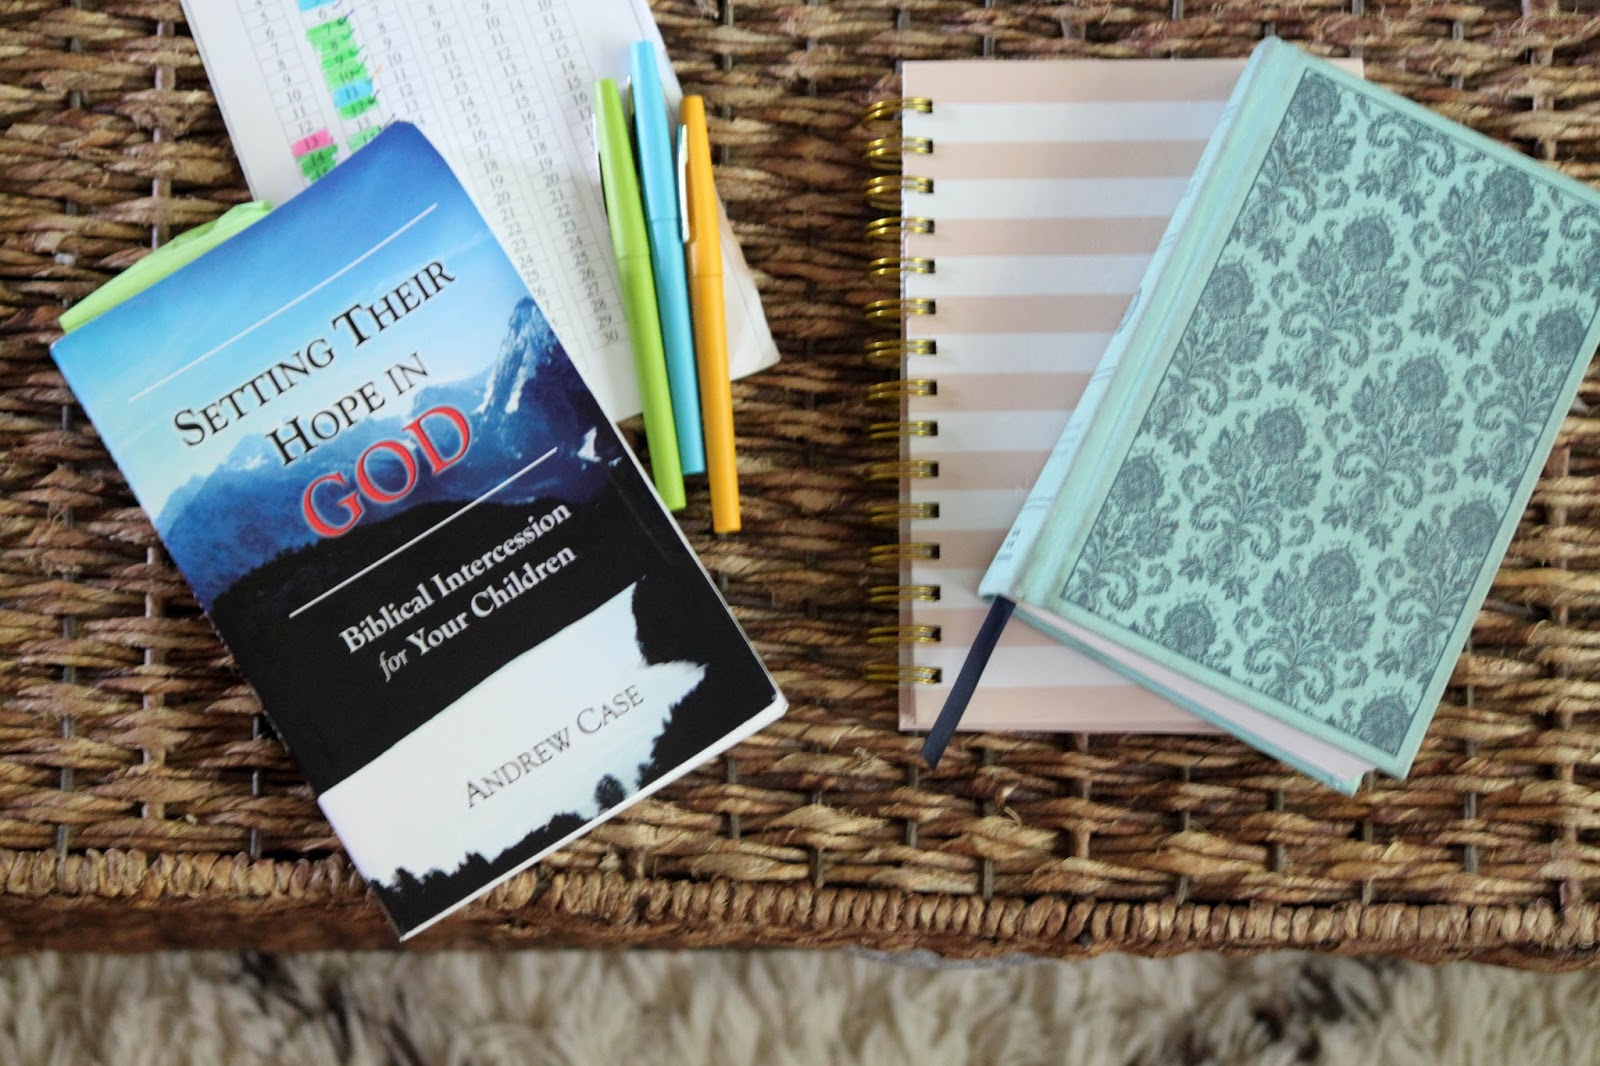 personal bible reading log Reading log for daily bible reading at church.